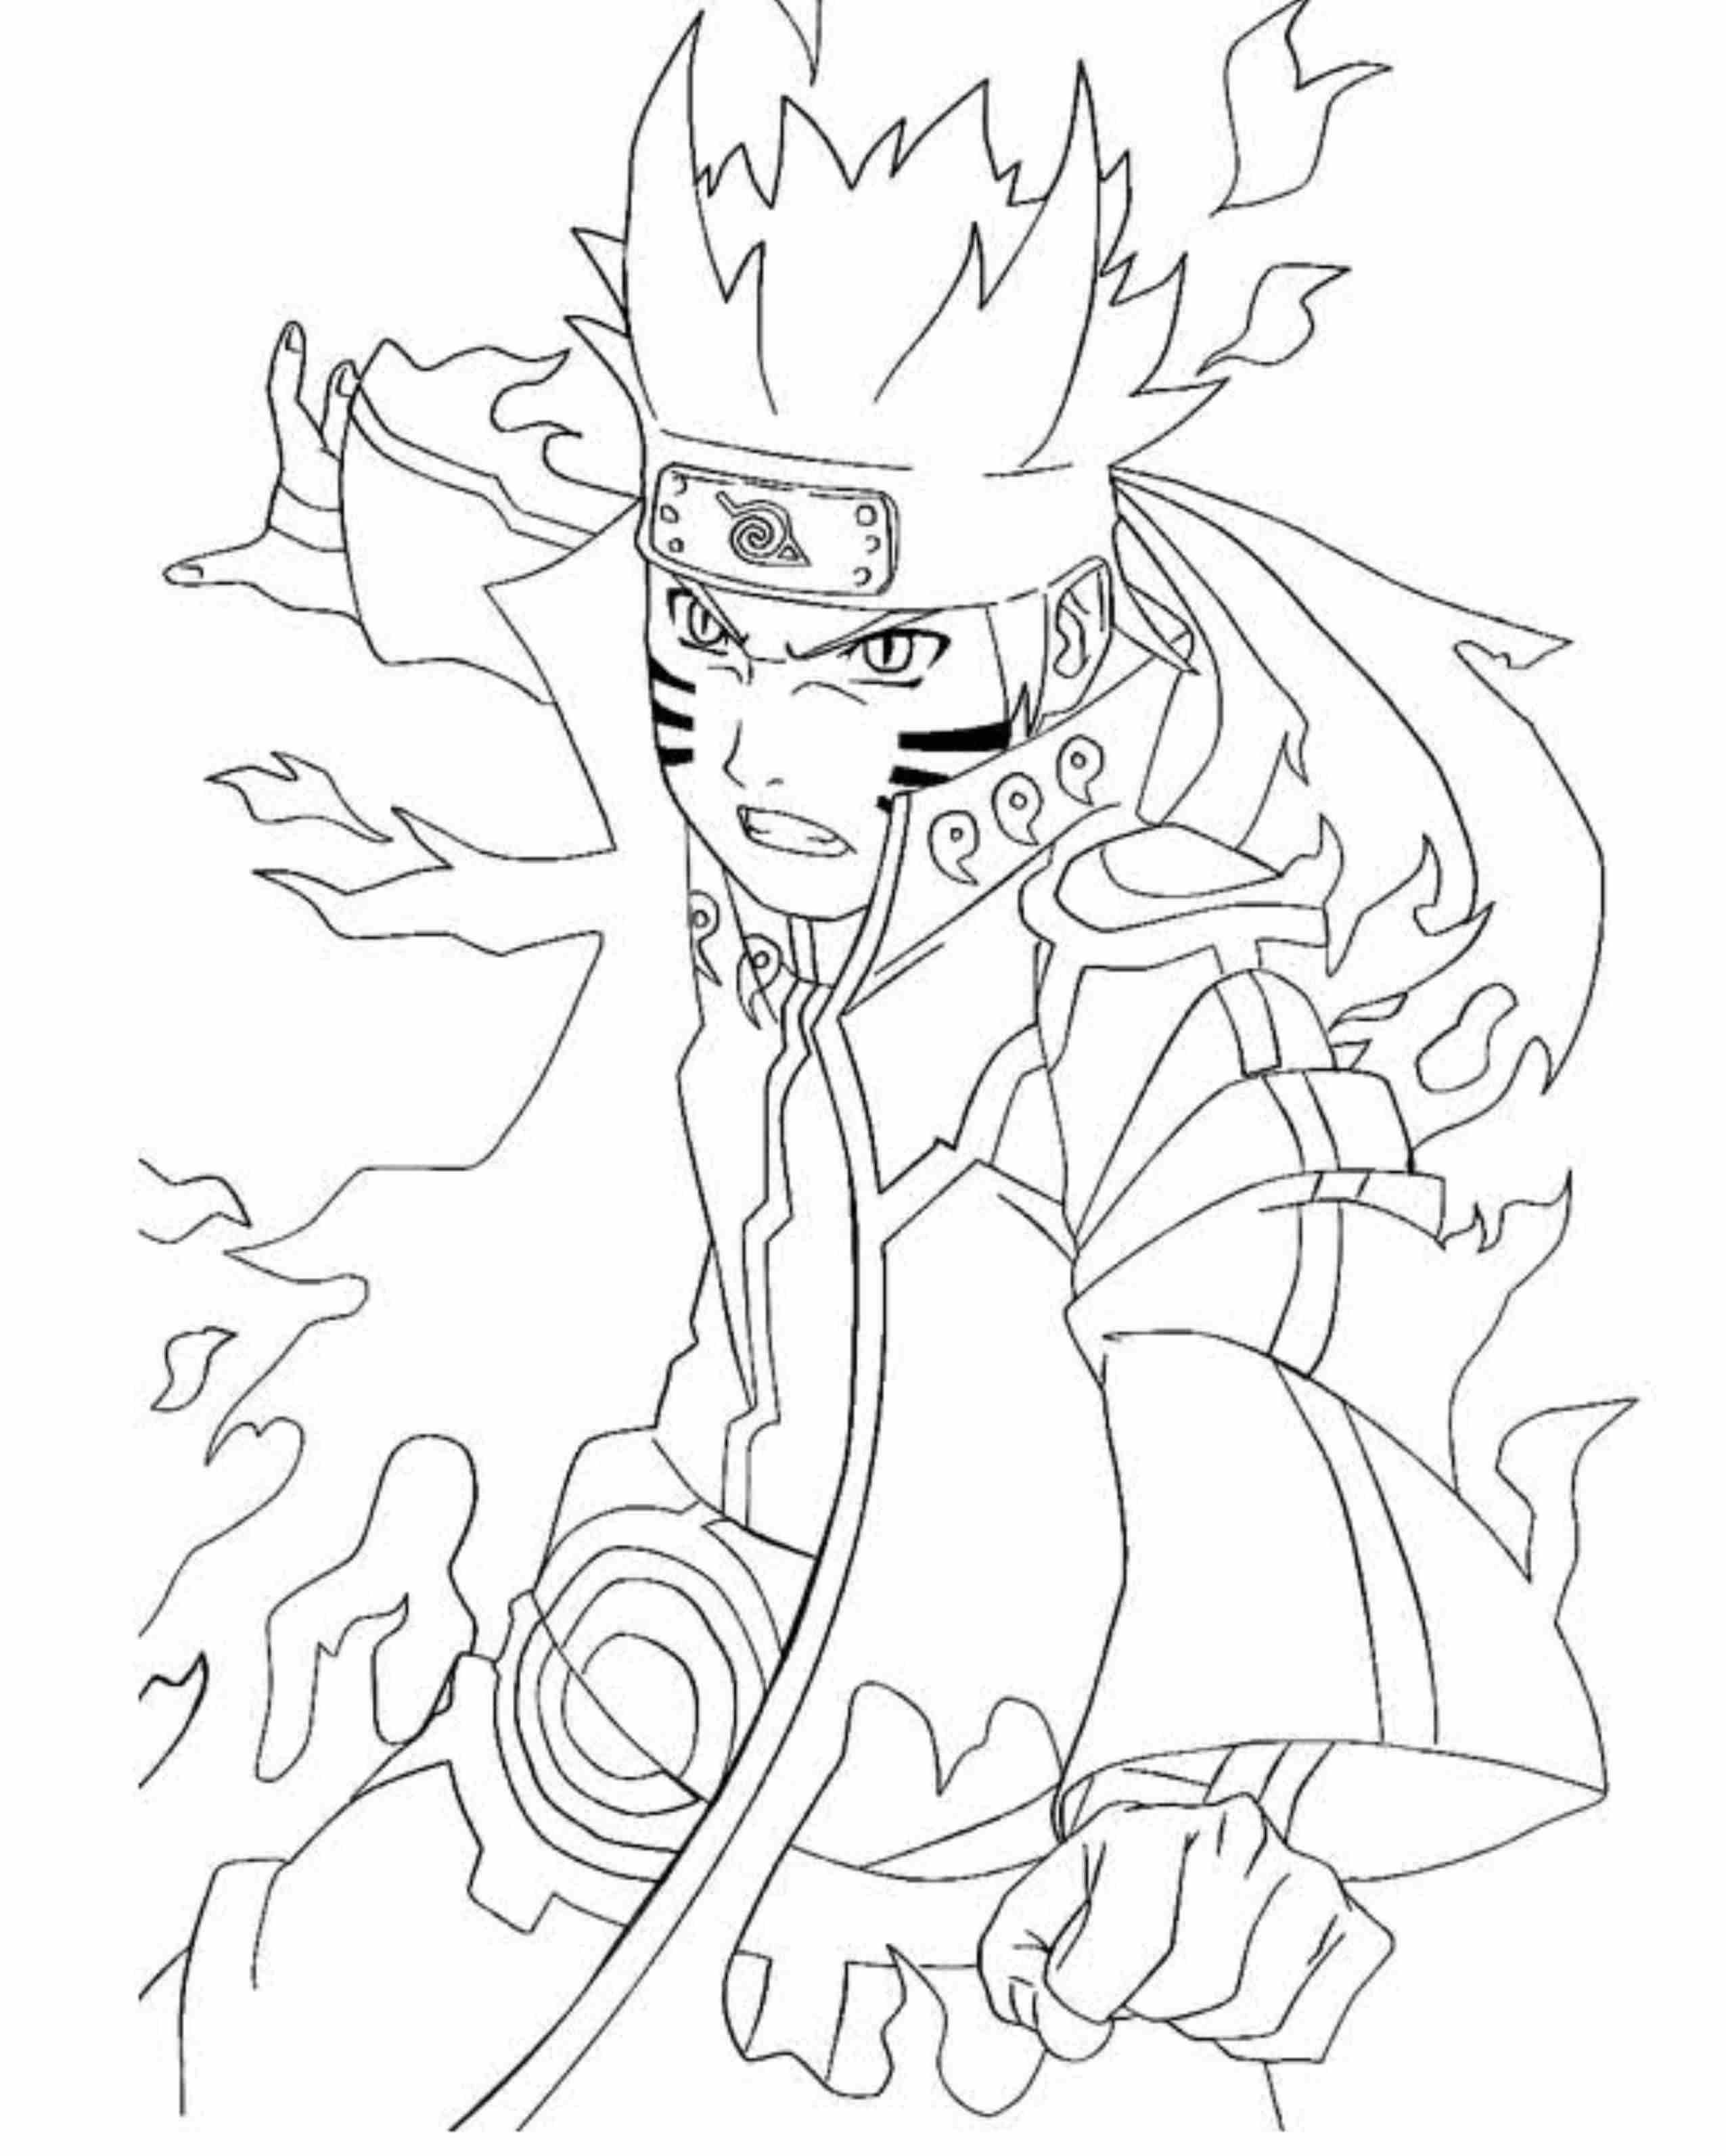 naruto shippuden coloring pages # 0